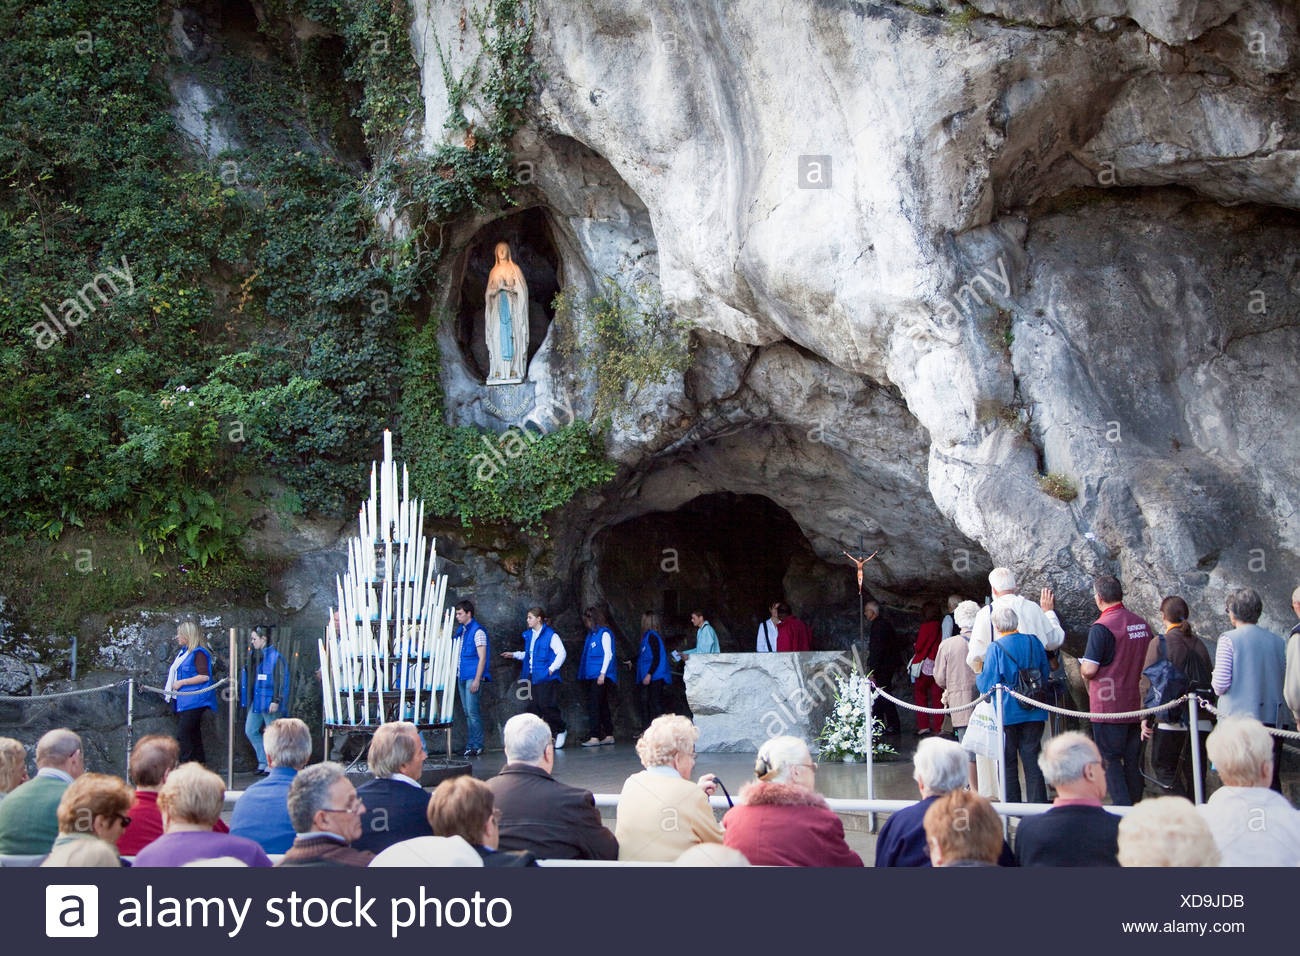 France, Europe, Lourdes, Pyrenees, place of pilgrimage, France, Europe, Lourdes, grotto, believers, creditors, religion - Stock Image